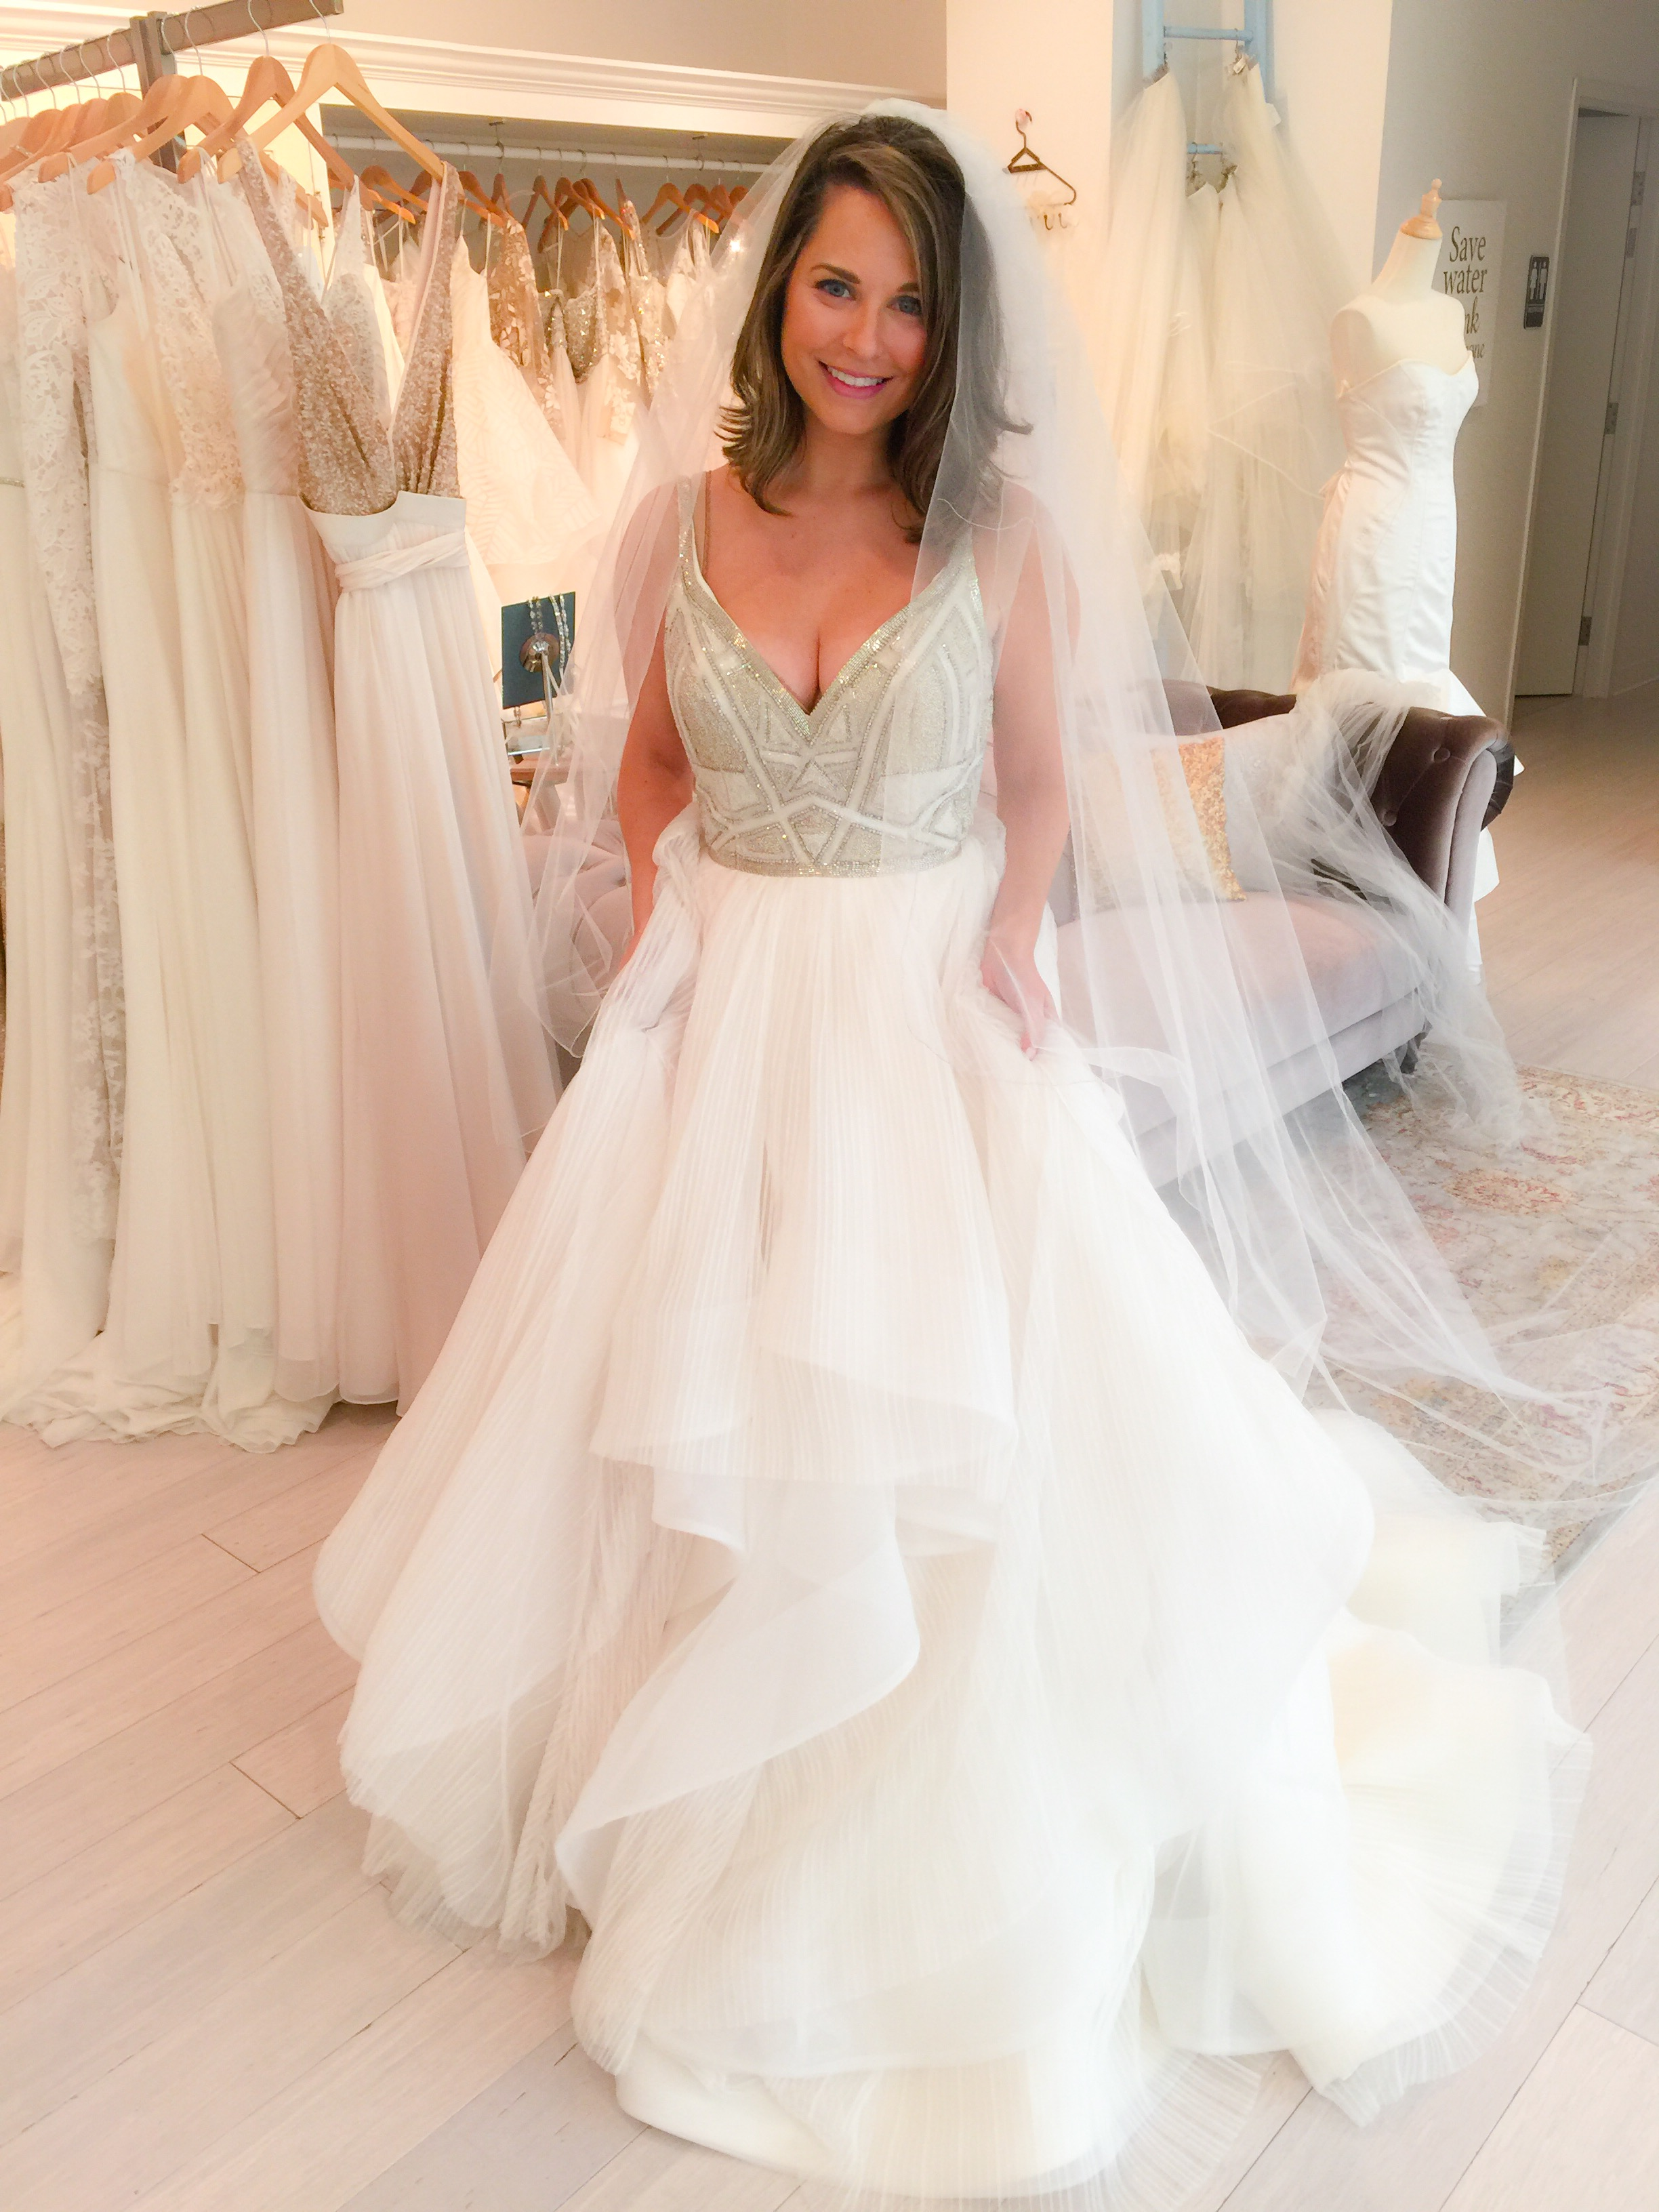 Saying YES To The DRESS